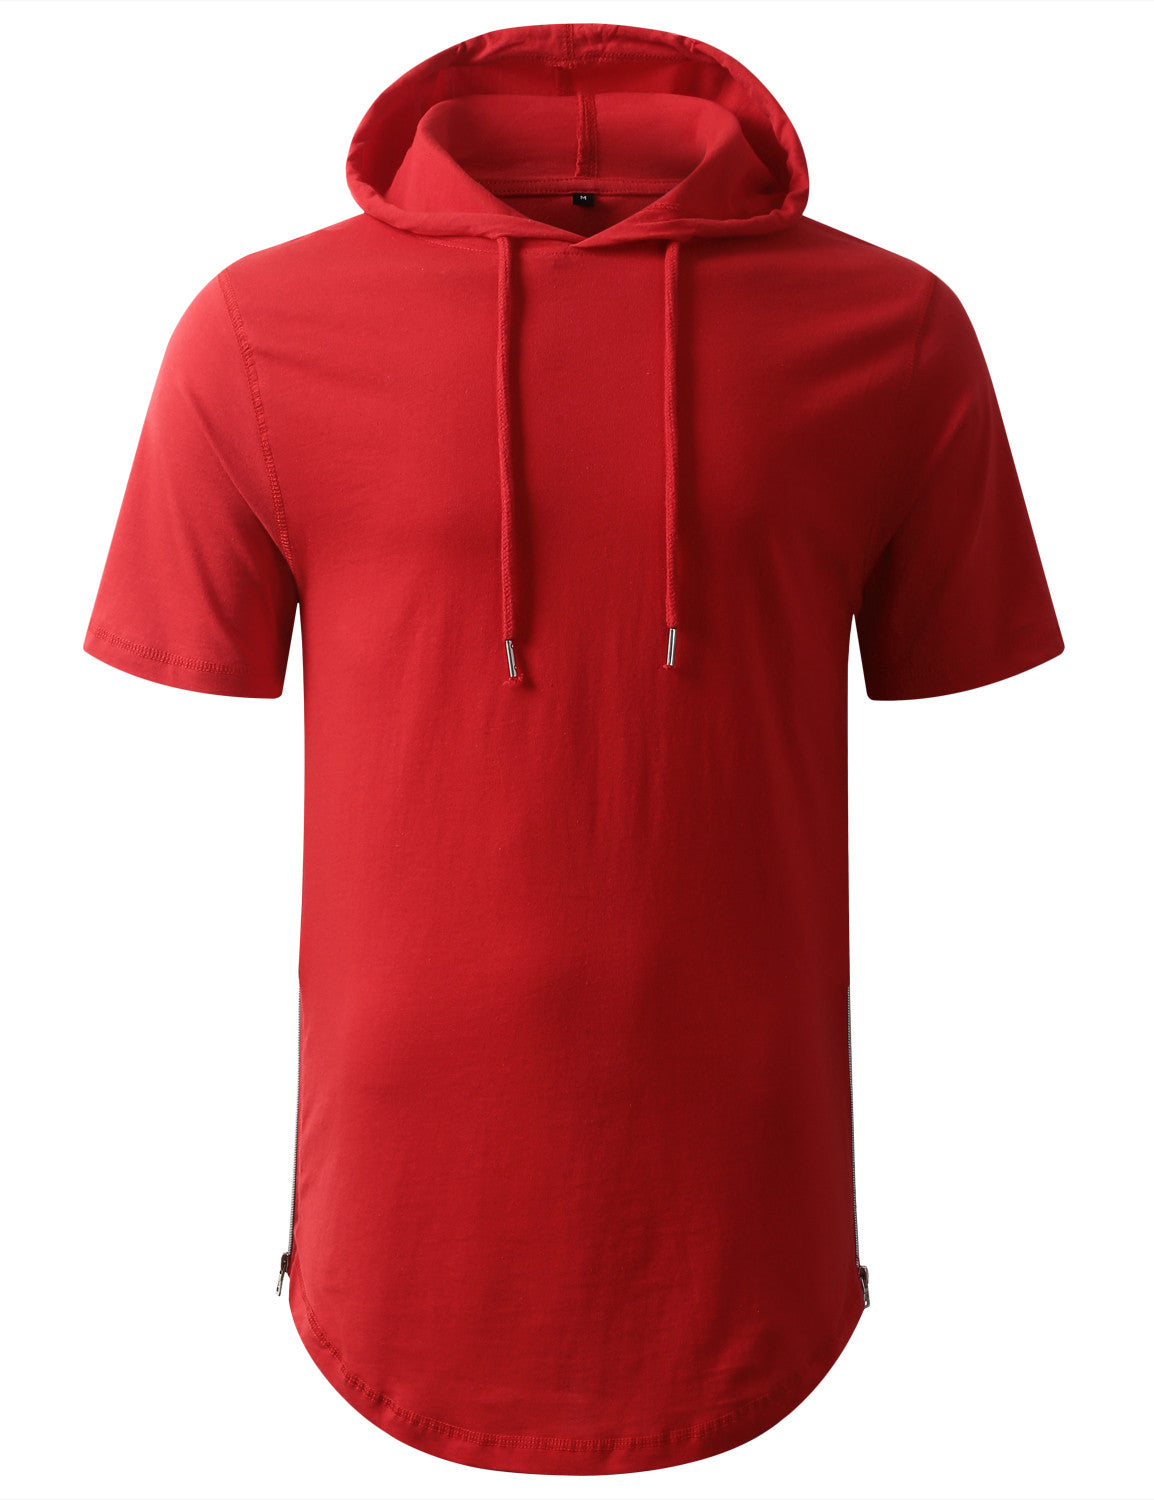 RED Longline Short Sleeve Hoodie with Side Zipper